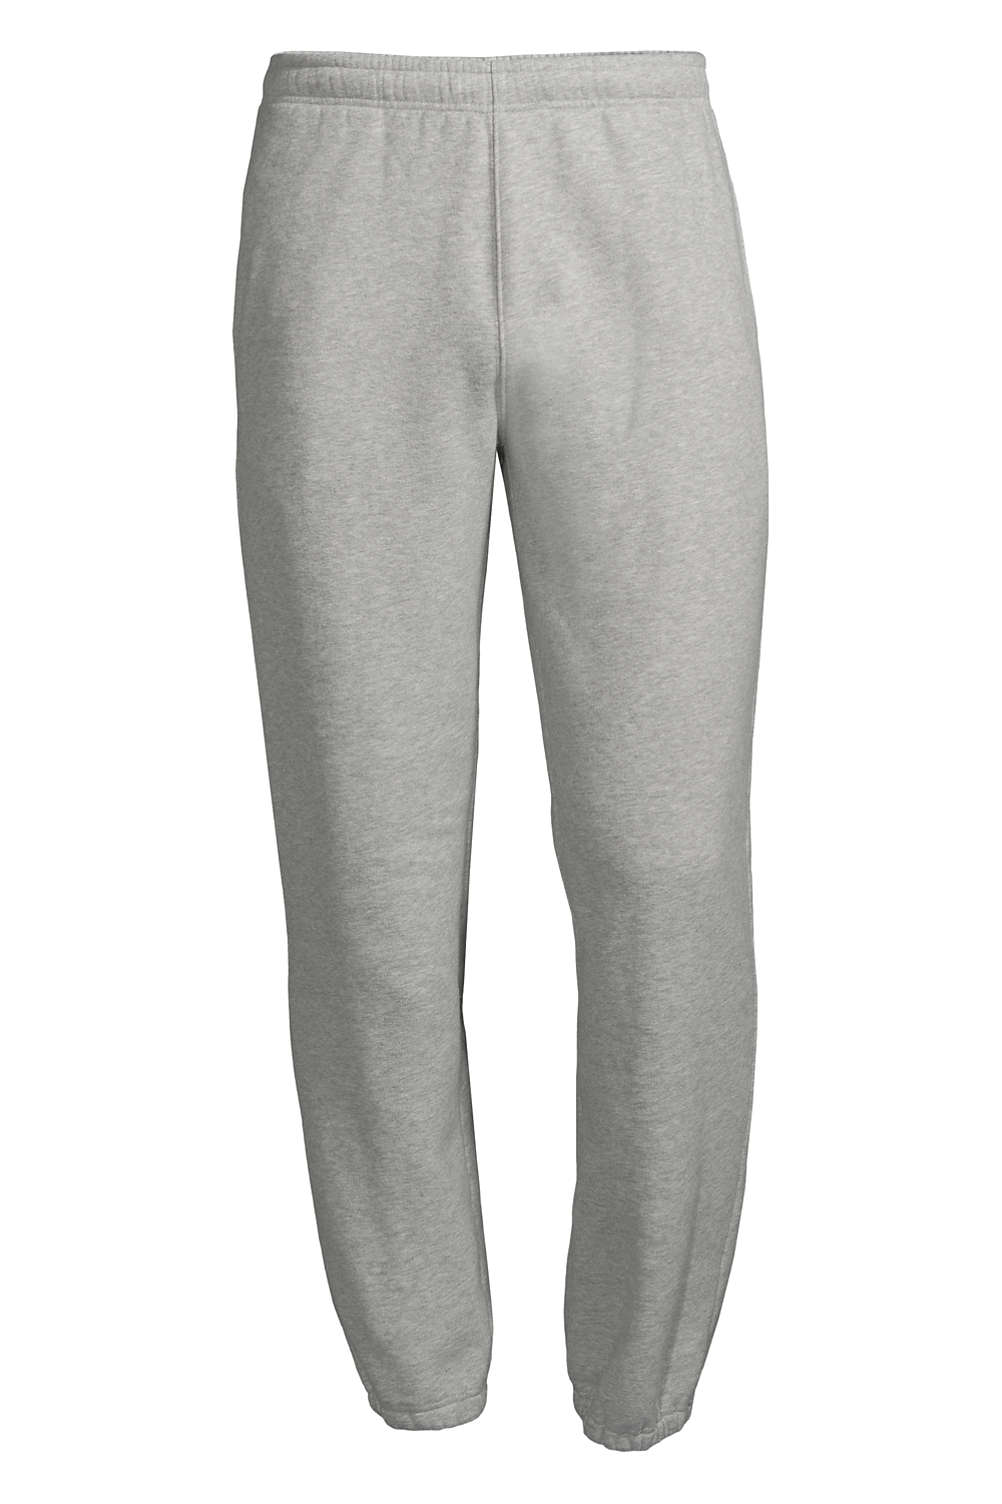 628bed1cd9294d Men's Serious Sweats Sweatpants from Lands' End